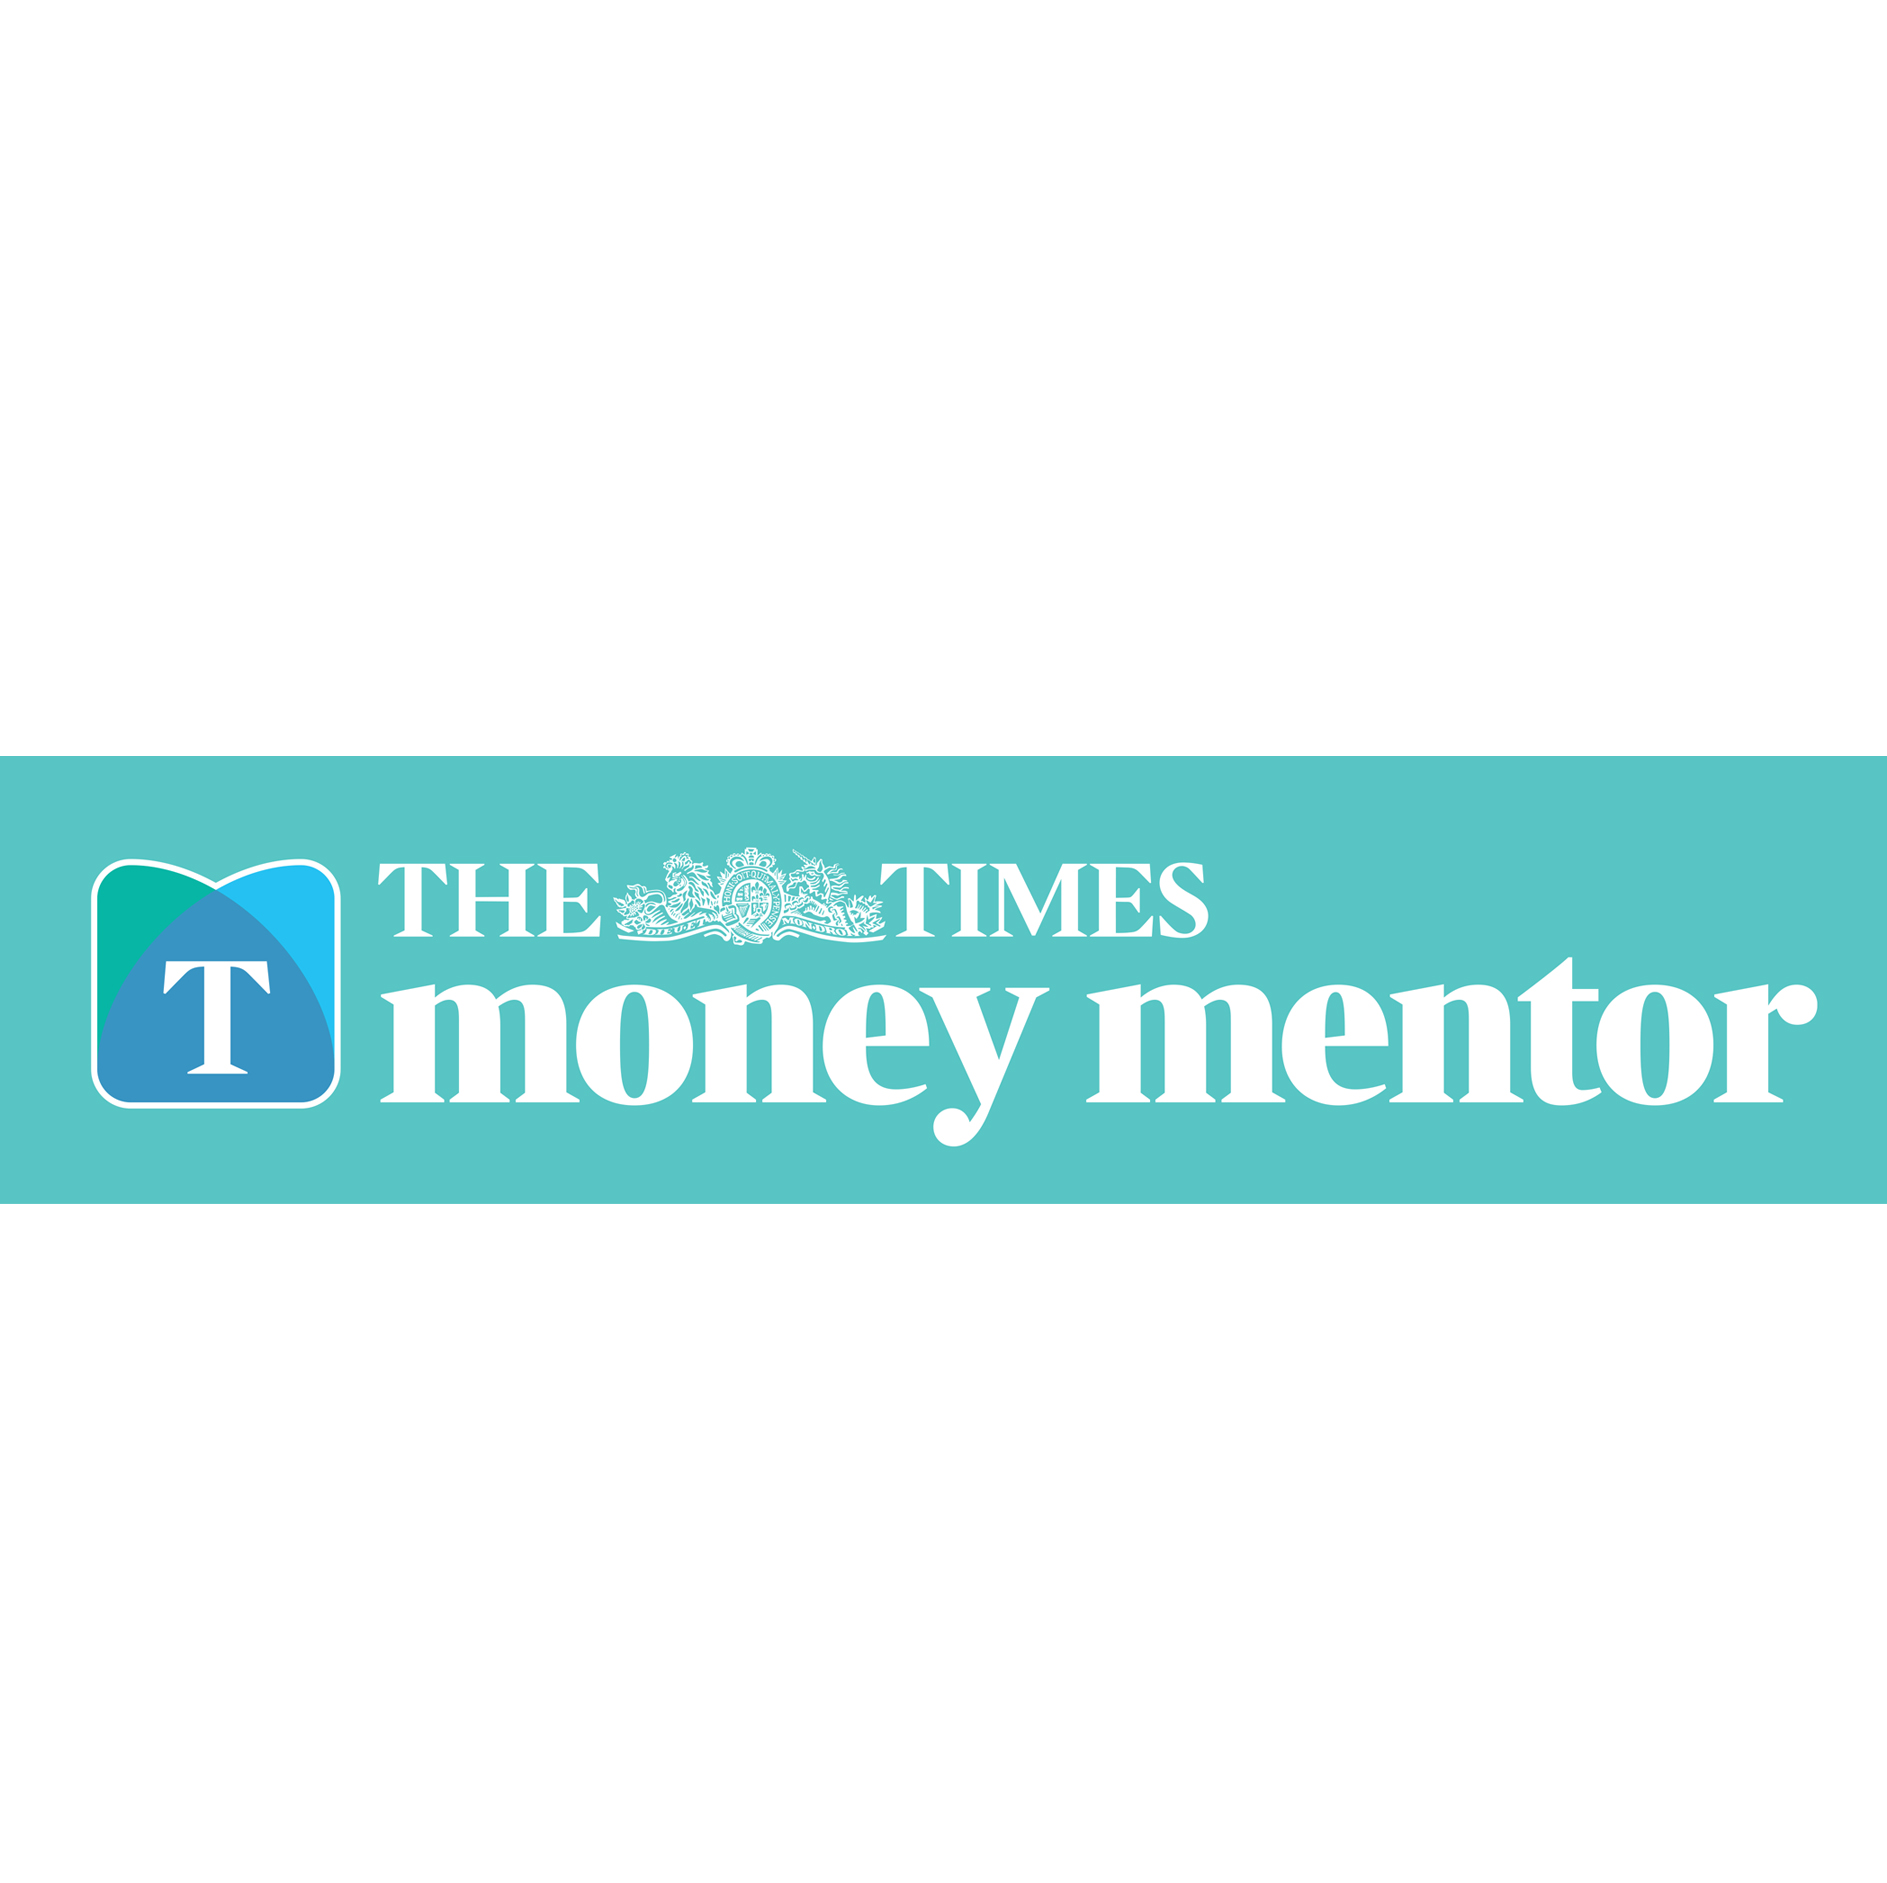 Times Money Mentor Licensing